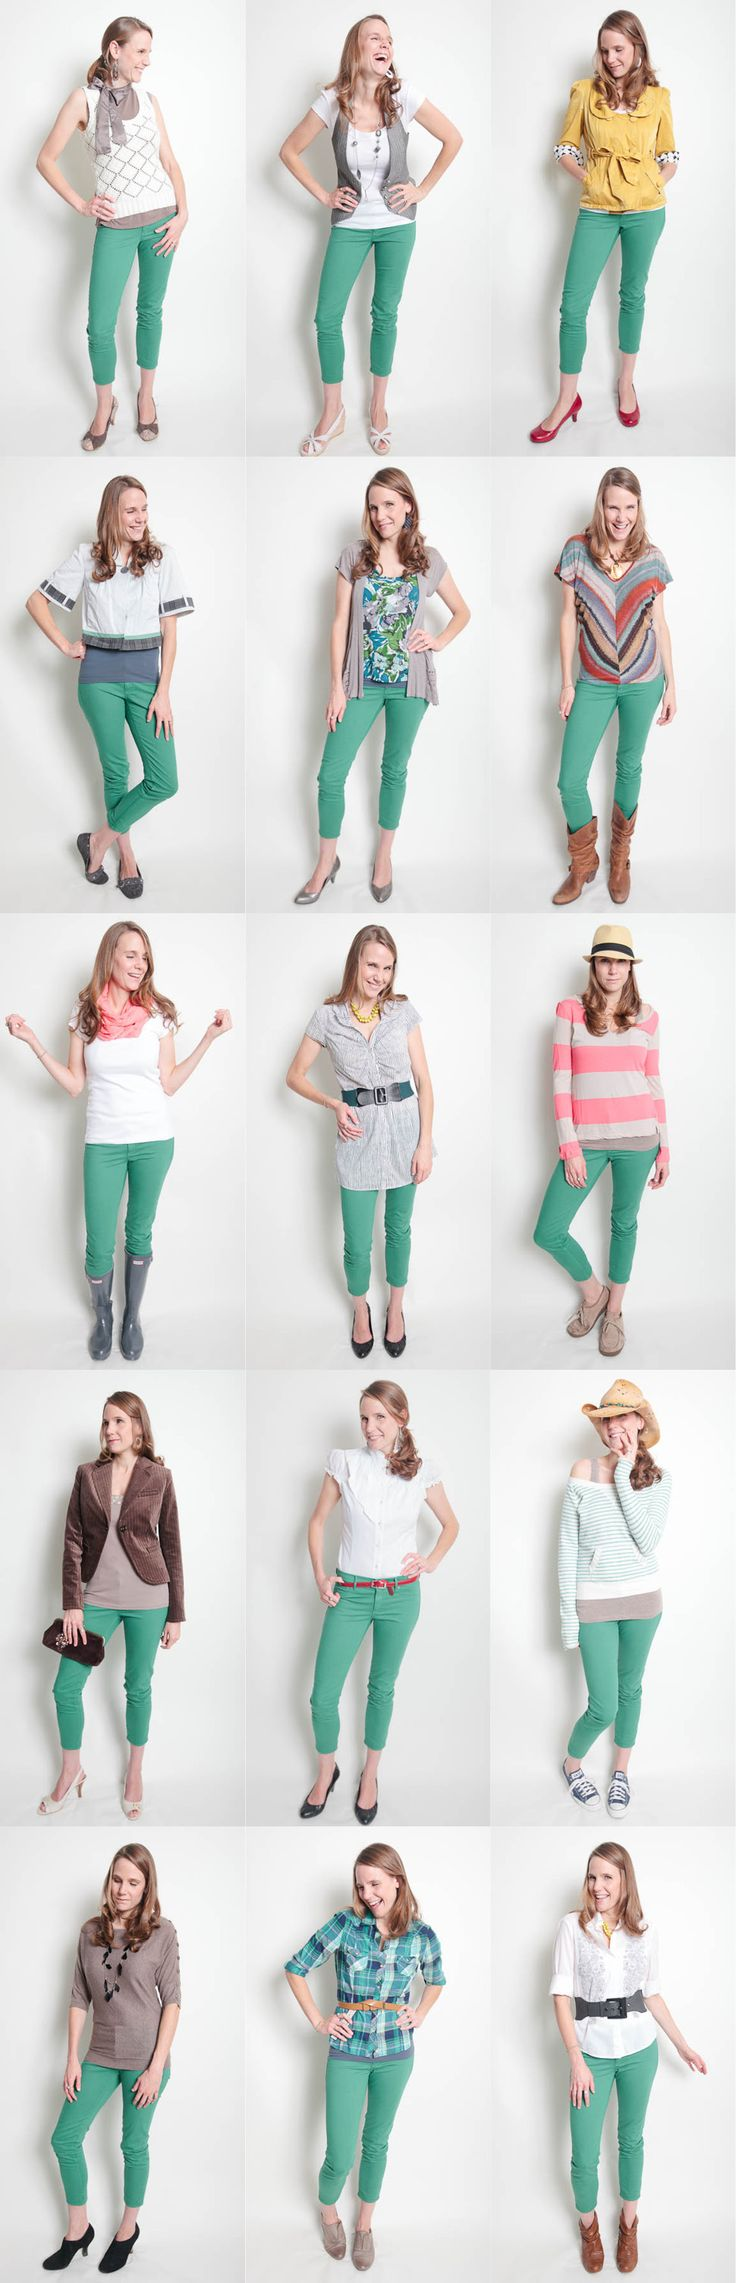 Green jeans - You can wear them so many ways! Proof that I am not thinking through my closet very well.